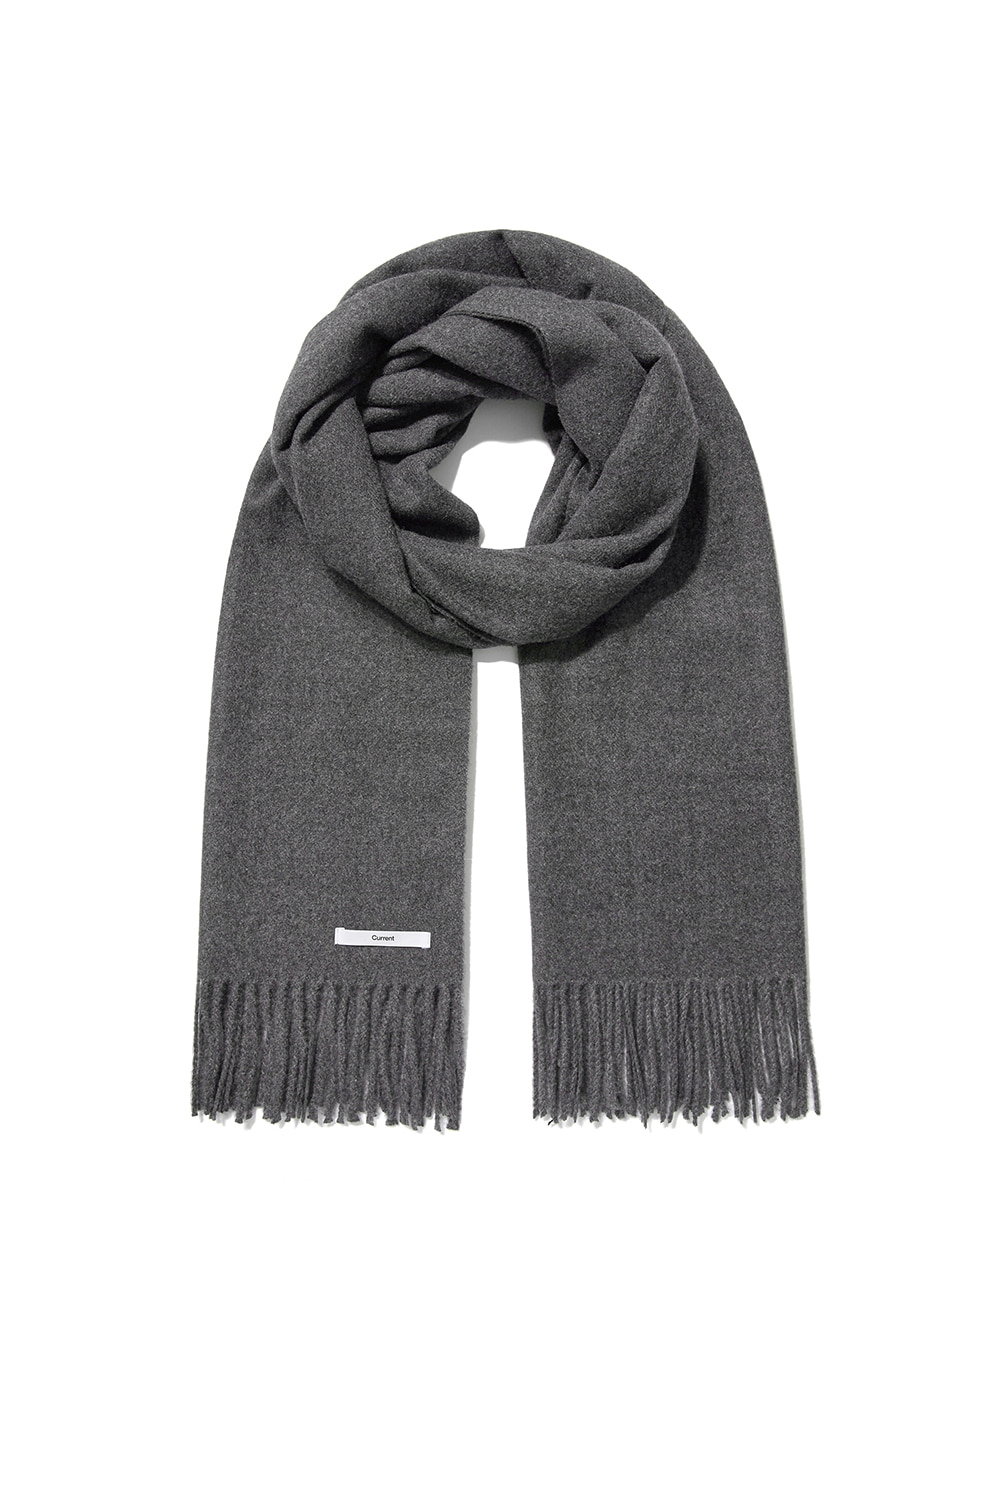 Cashmere Touch Muffler [Charcoal Grey]